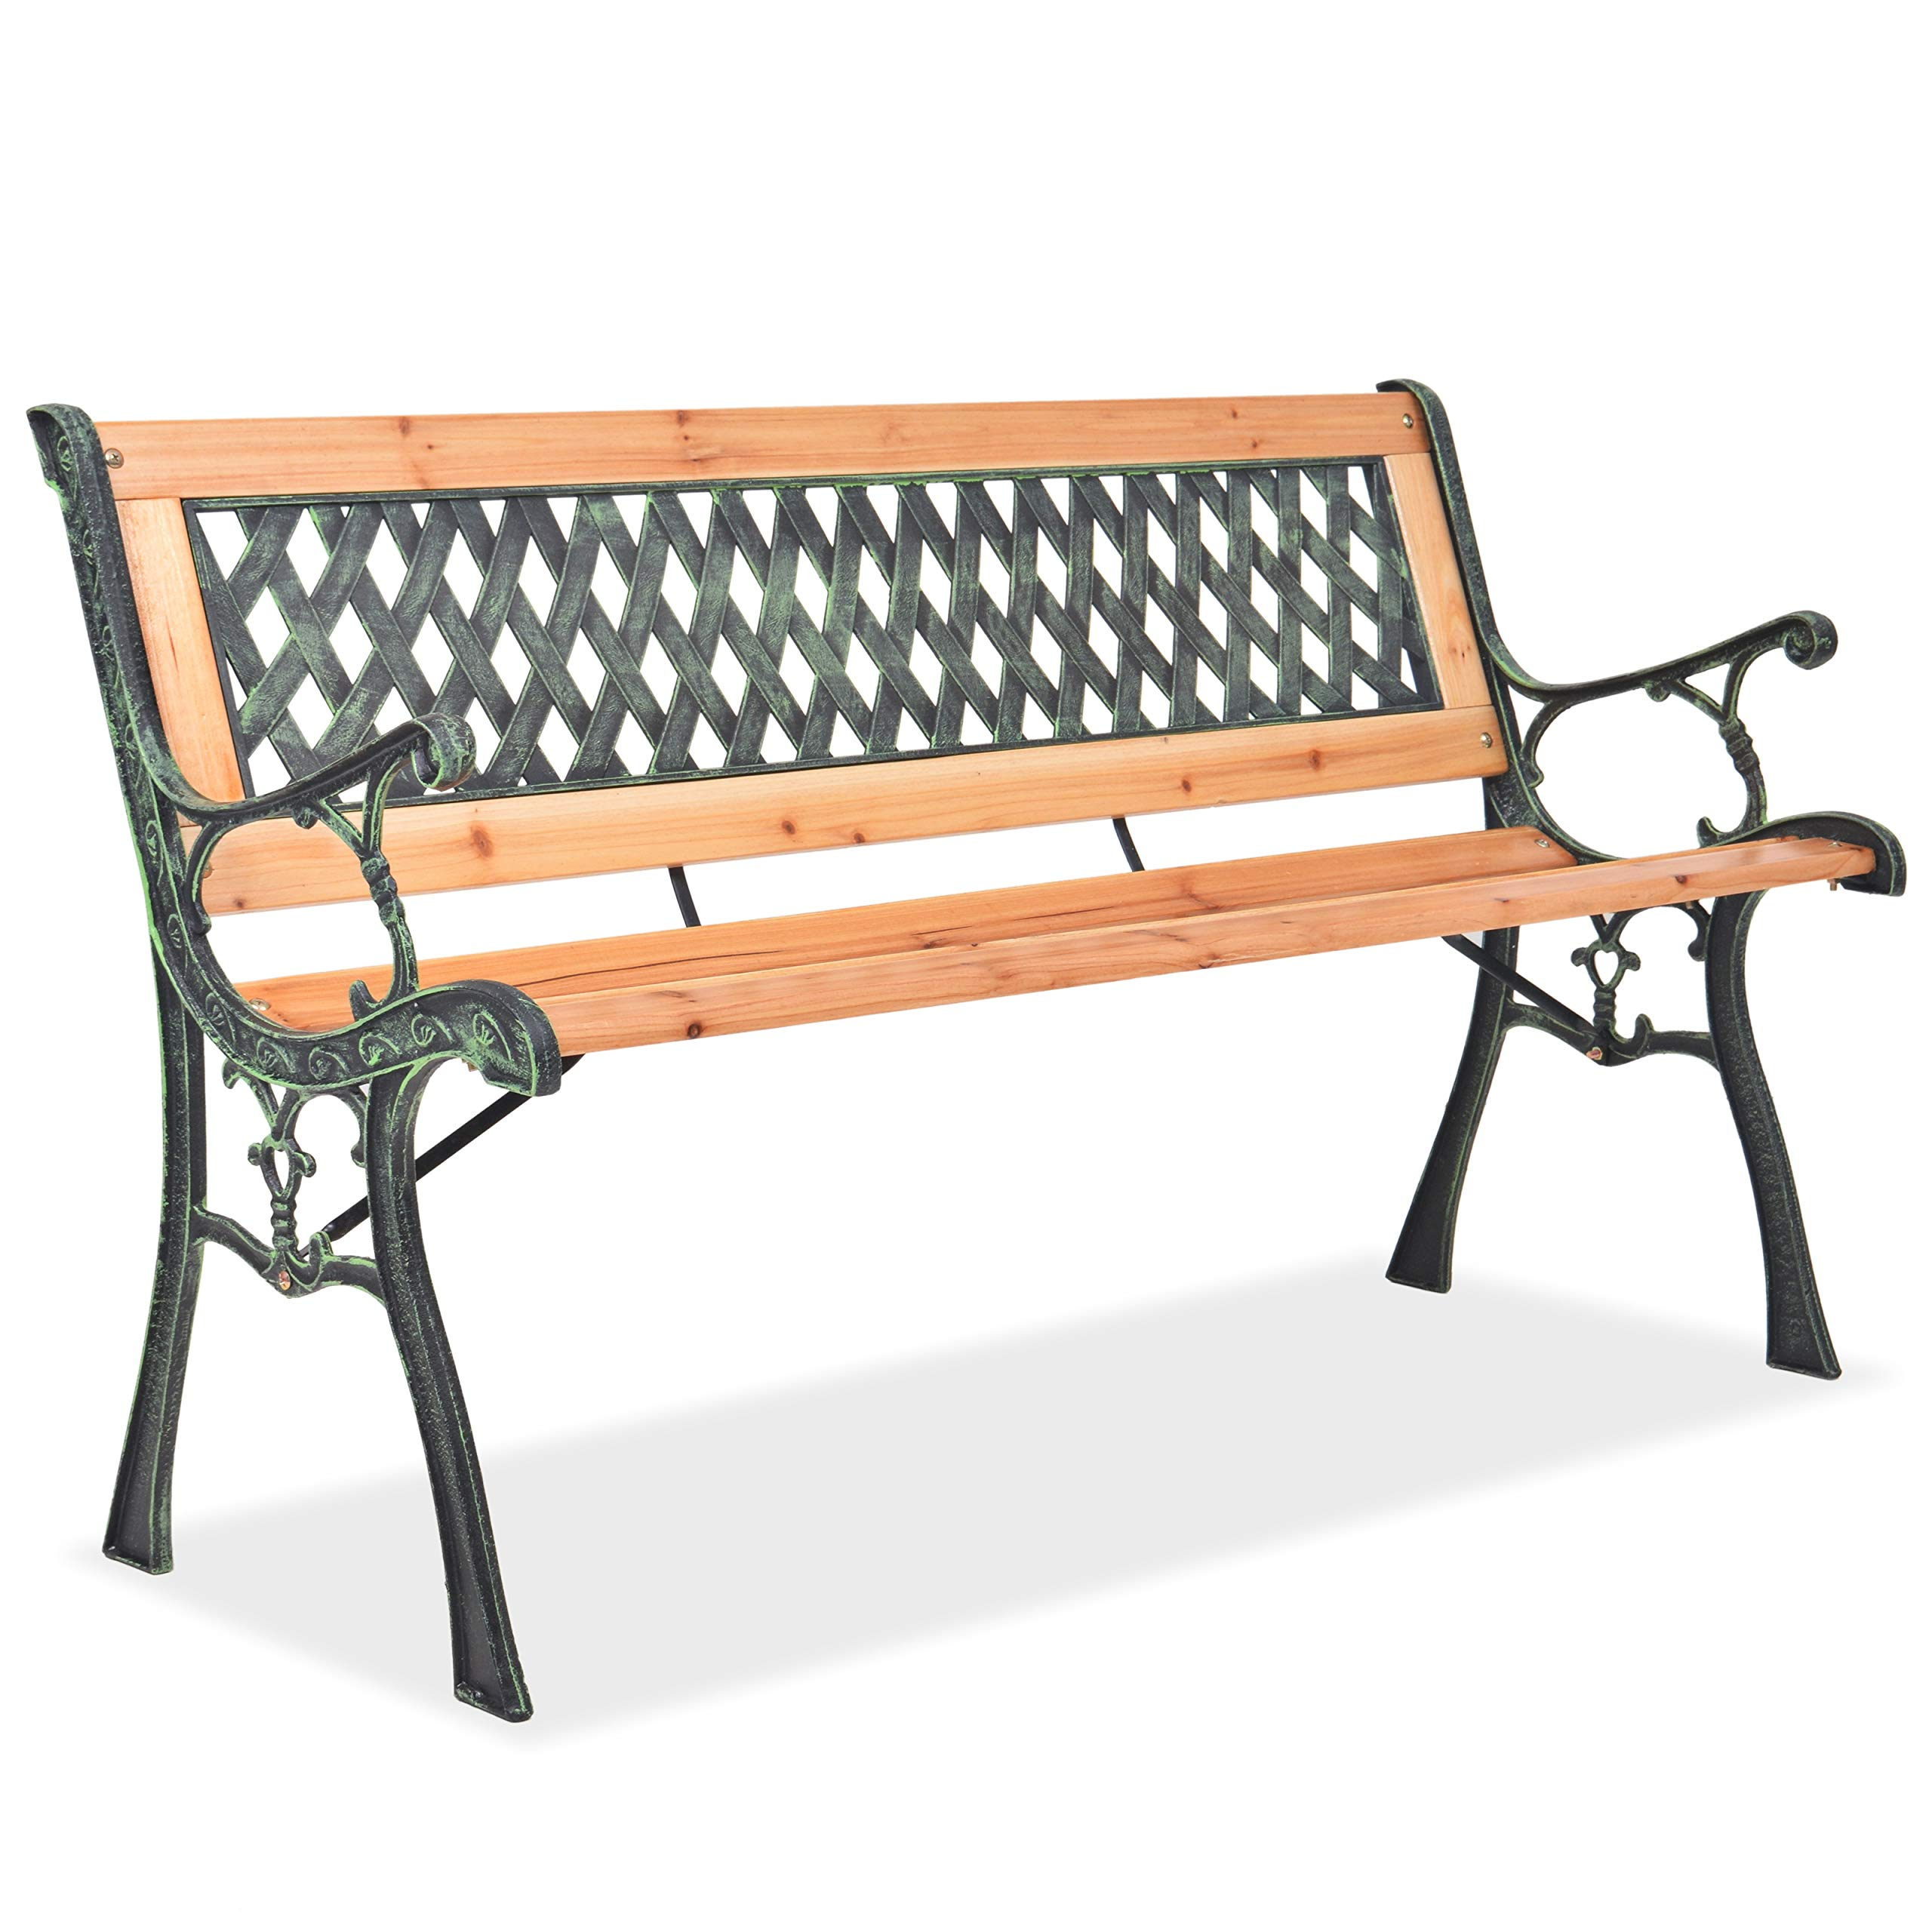 Michelle Metal Garden Benches Inside Trendy Vidaxl Garden Bench With Diamond Patterned Backrest Wood Seat Patio Furniture (View 19 of 30)